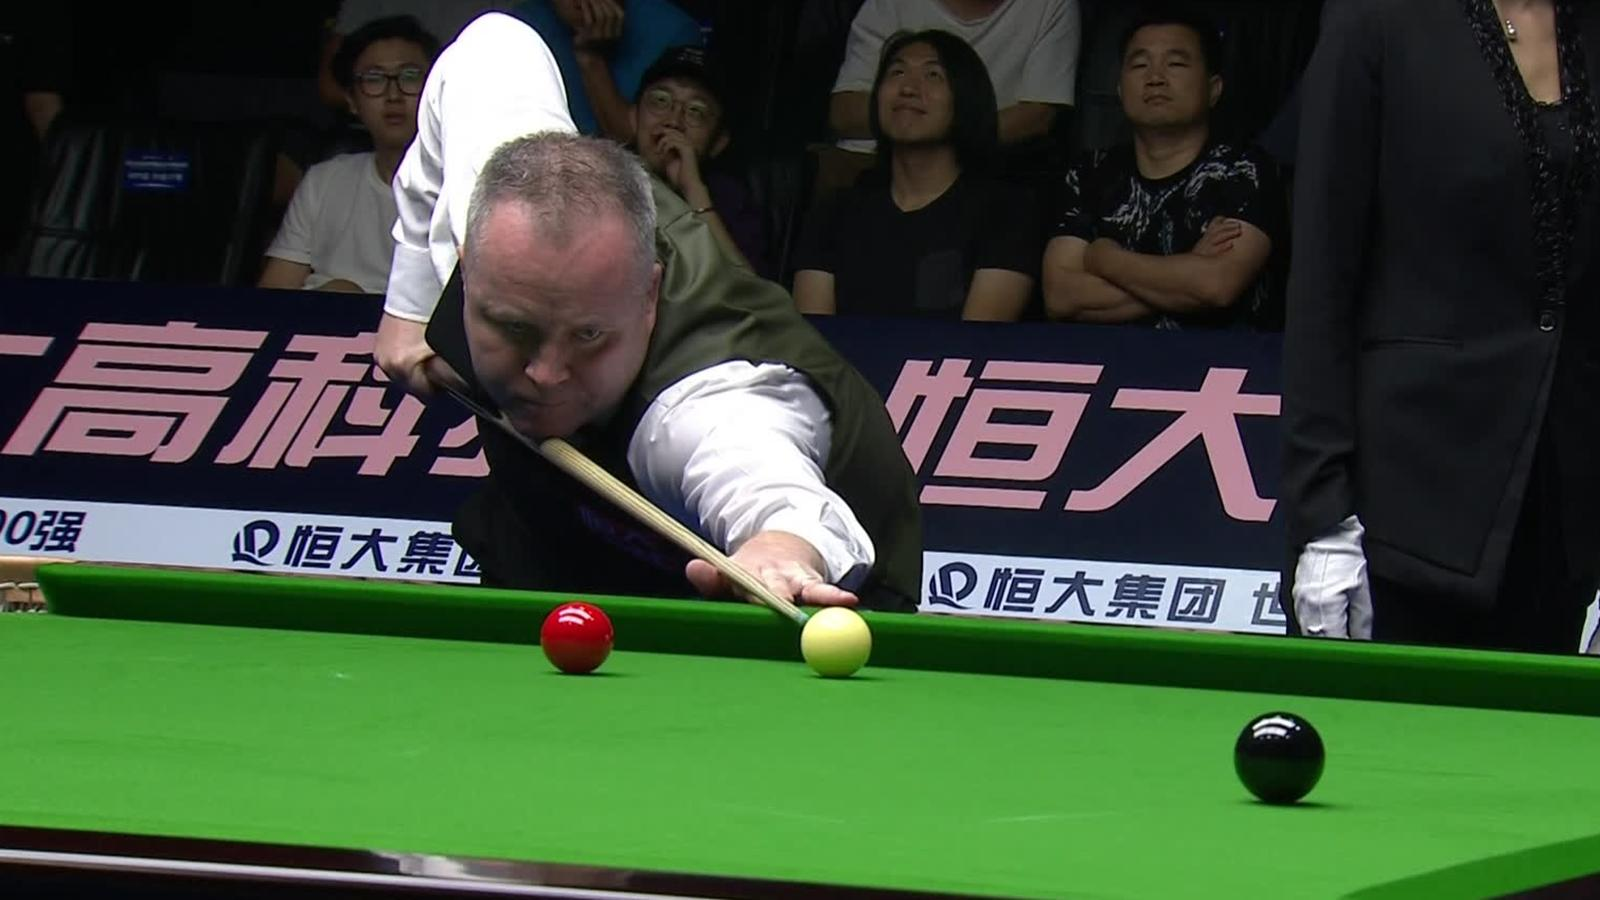 Snooker news - John Higgins and Judd Trump ease through to ...